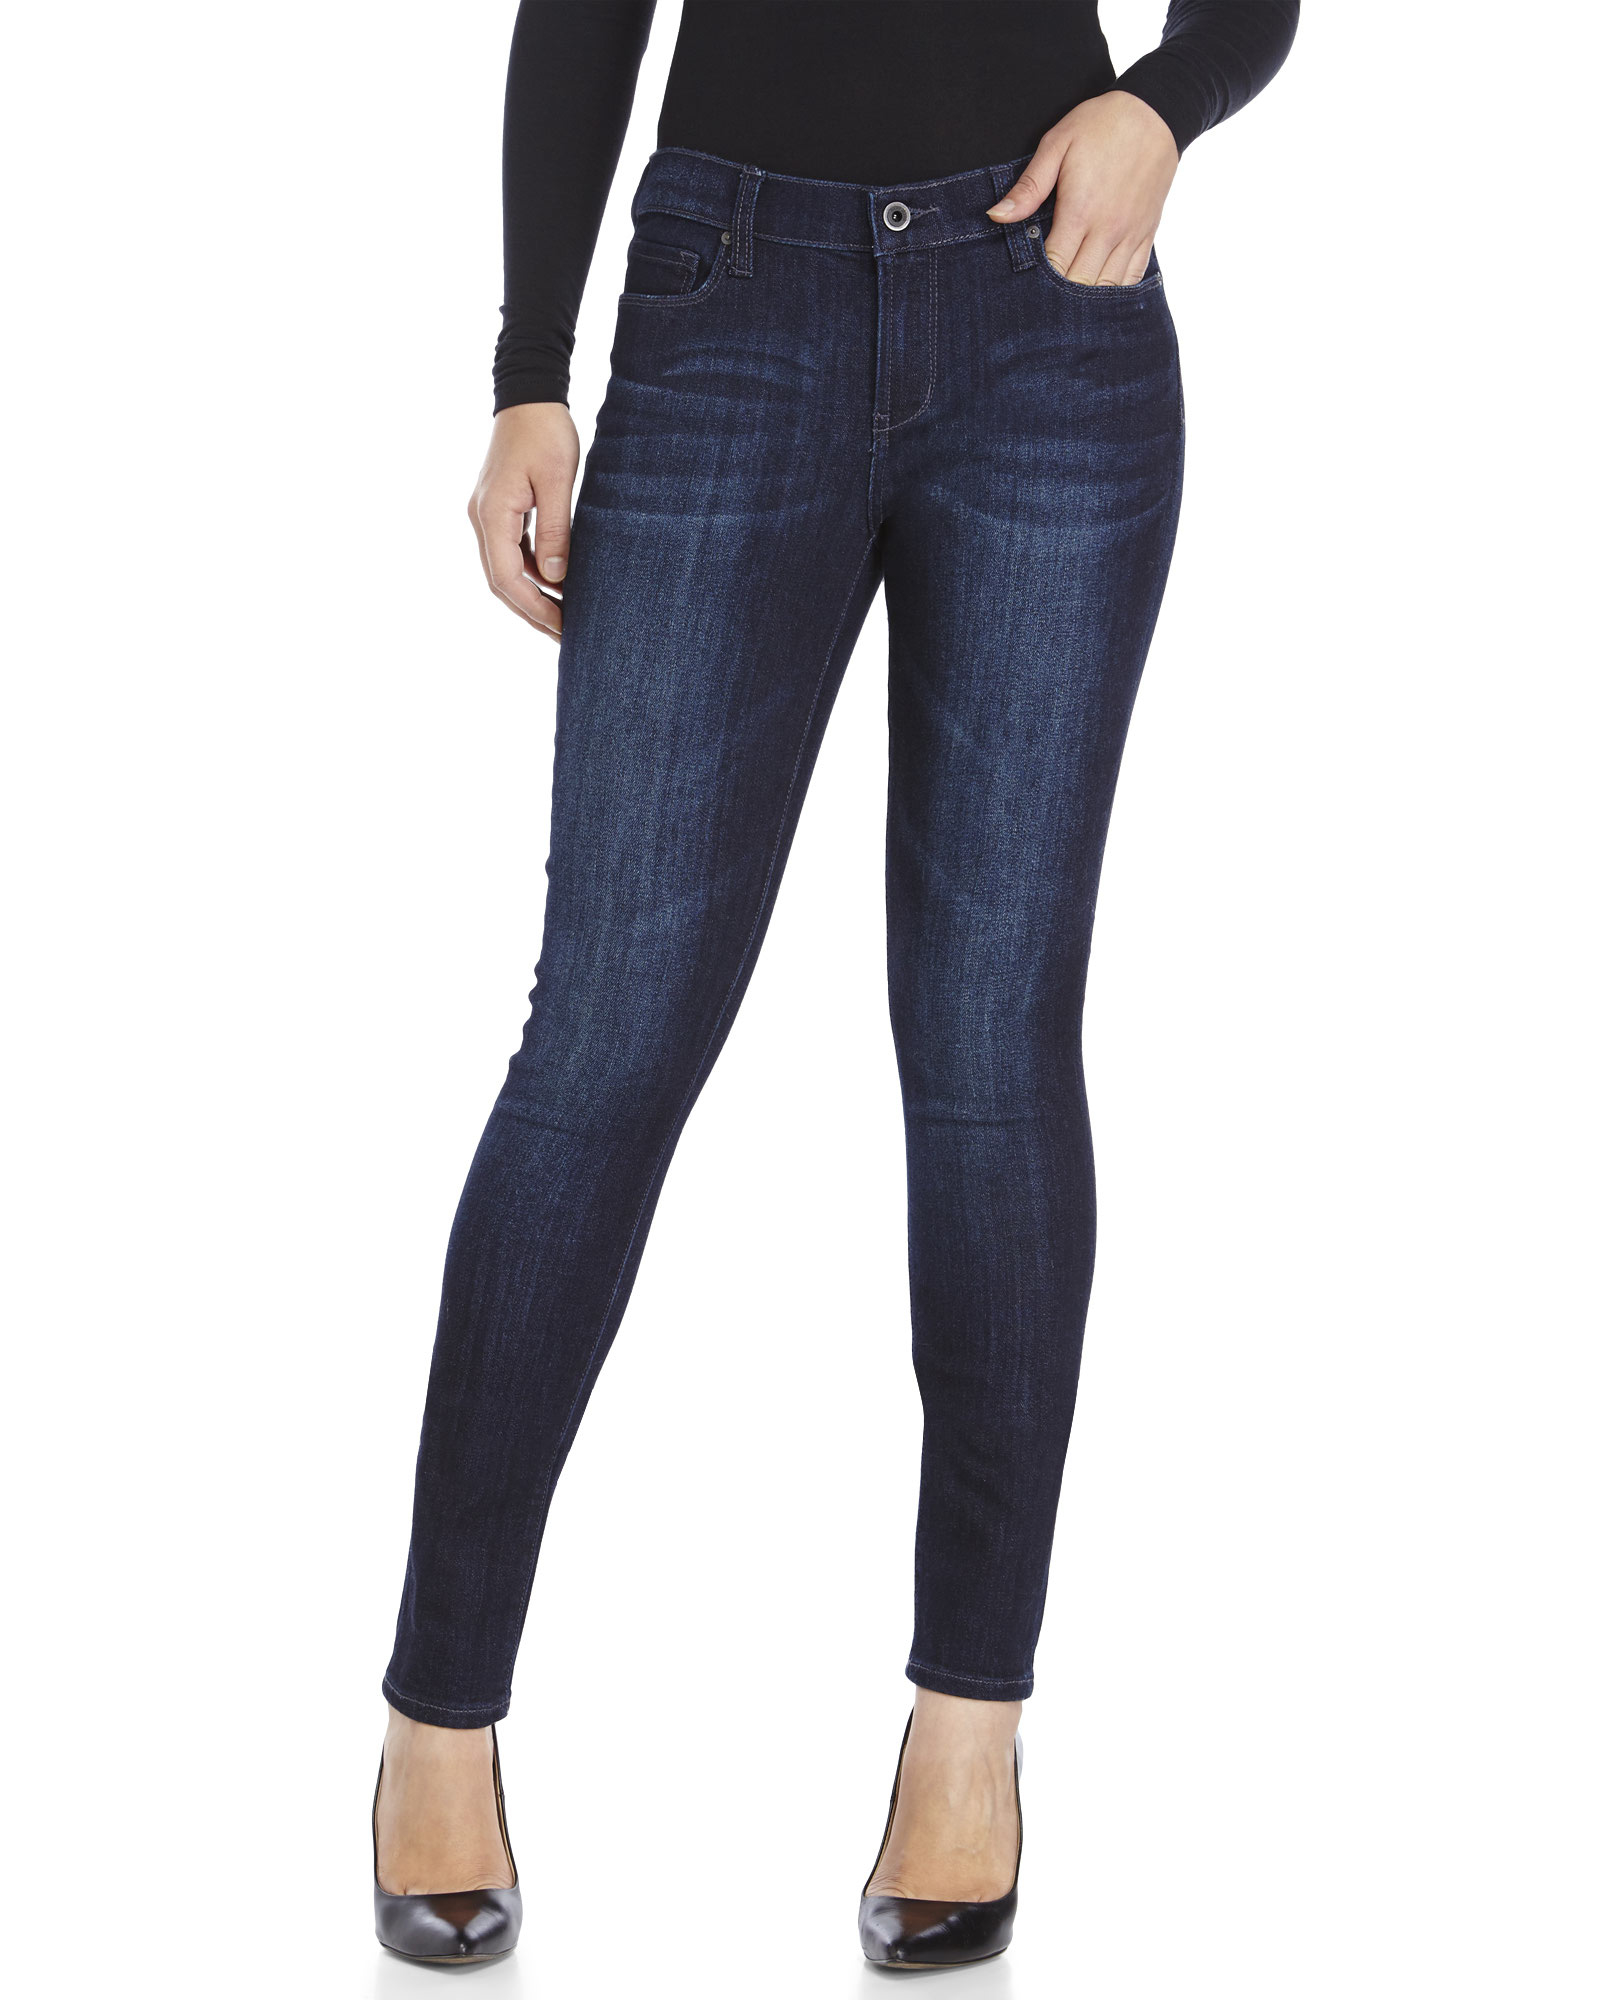 Dkny Pristine Dark Wash City Ultra Skinny Jeans in Blue | Lyst